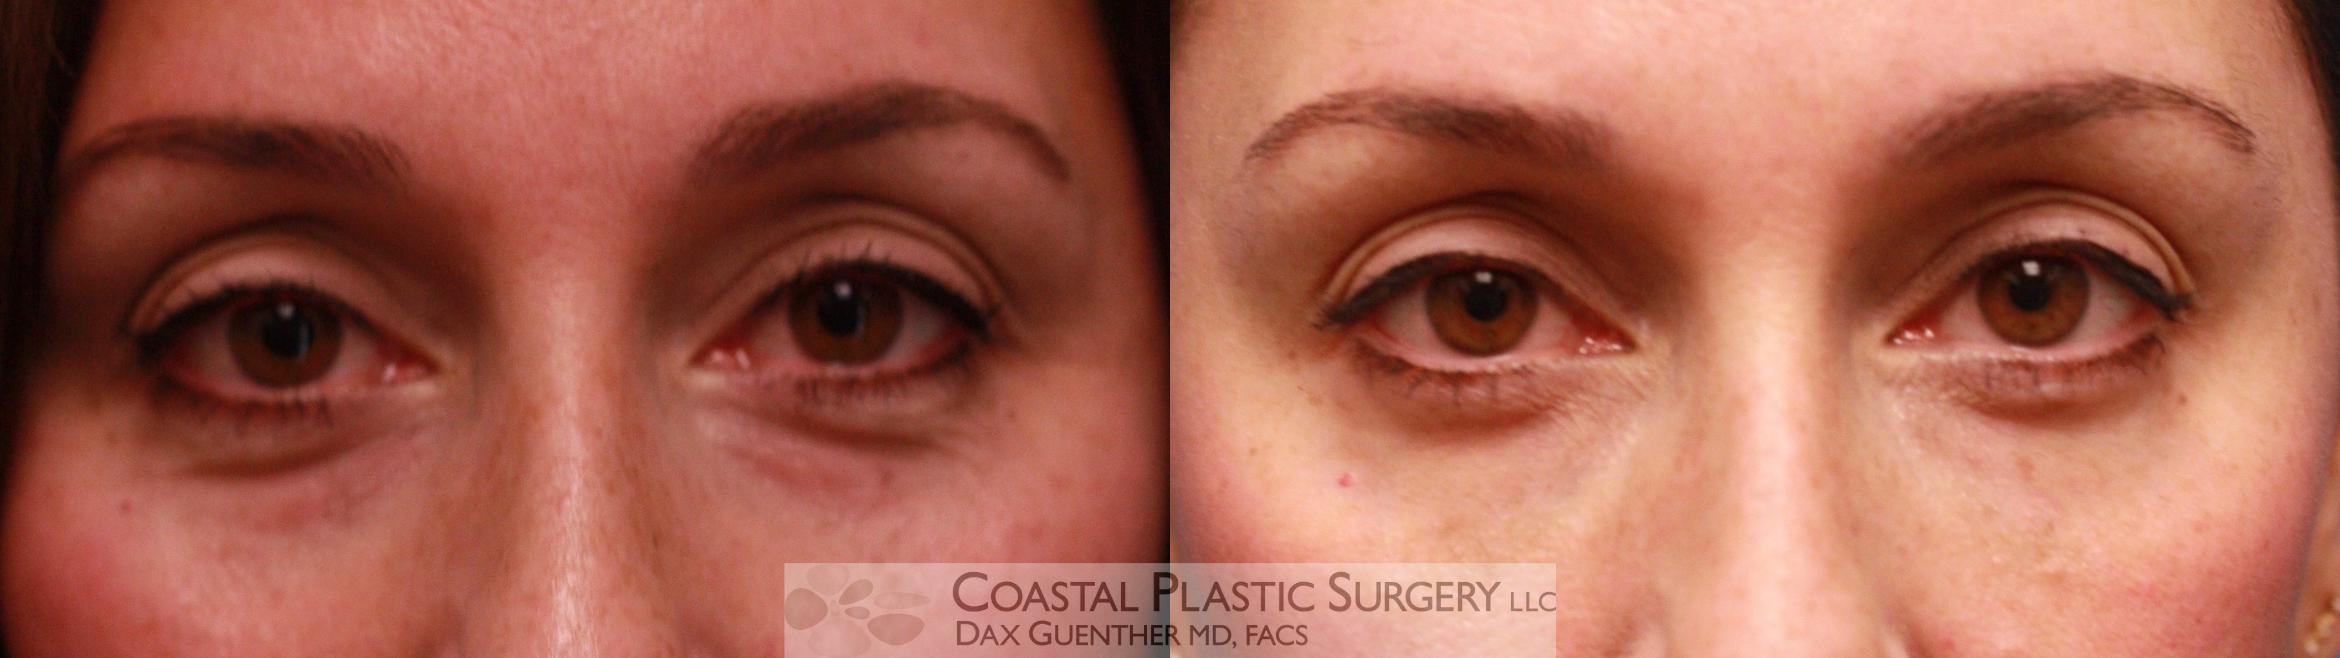 Fillers & Threads Before & After Photo | Hingham, MA | Dax Guenther, MD: Coastal Plastic Surgery